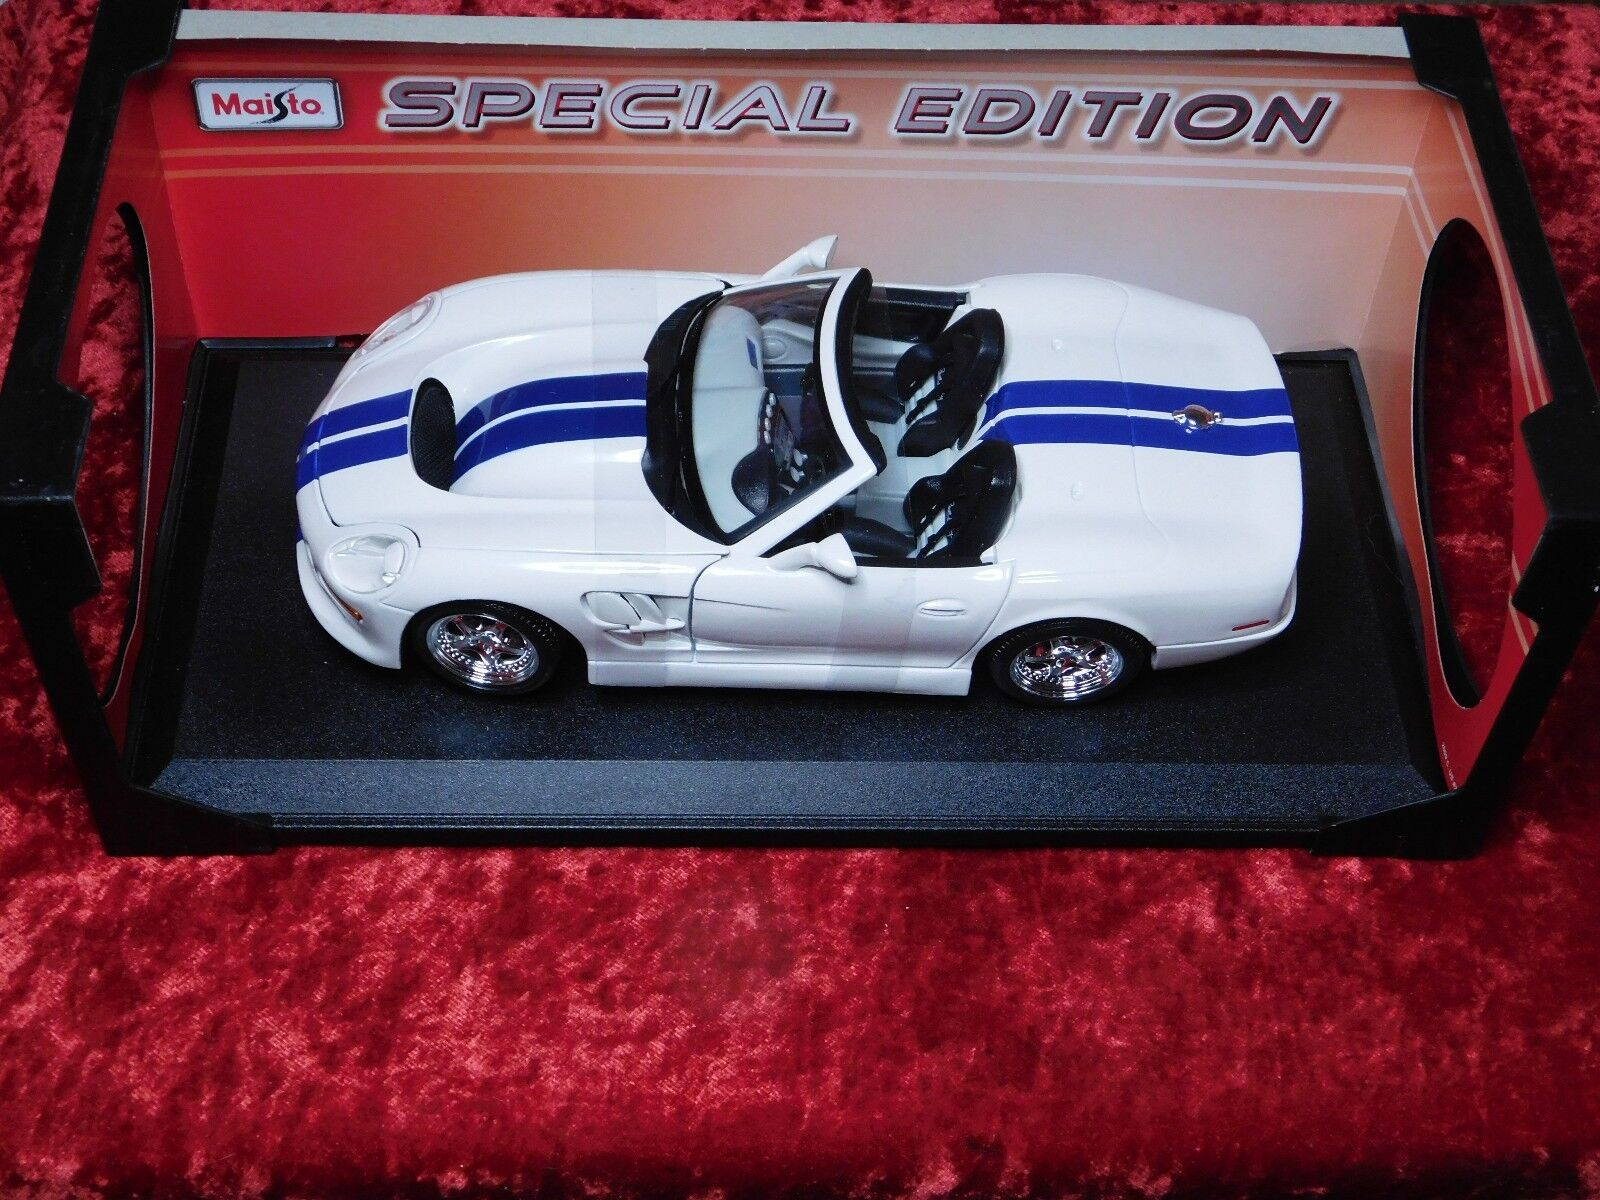 2009 Maisto 1 18 Special Edition Shelby Series 1 White With bluee Racing Stripes